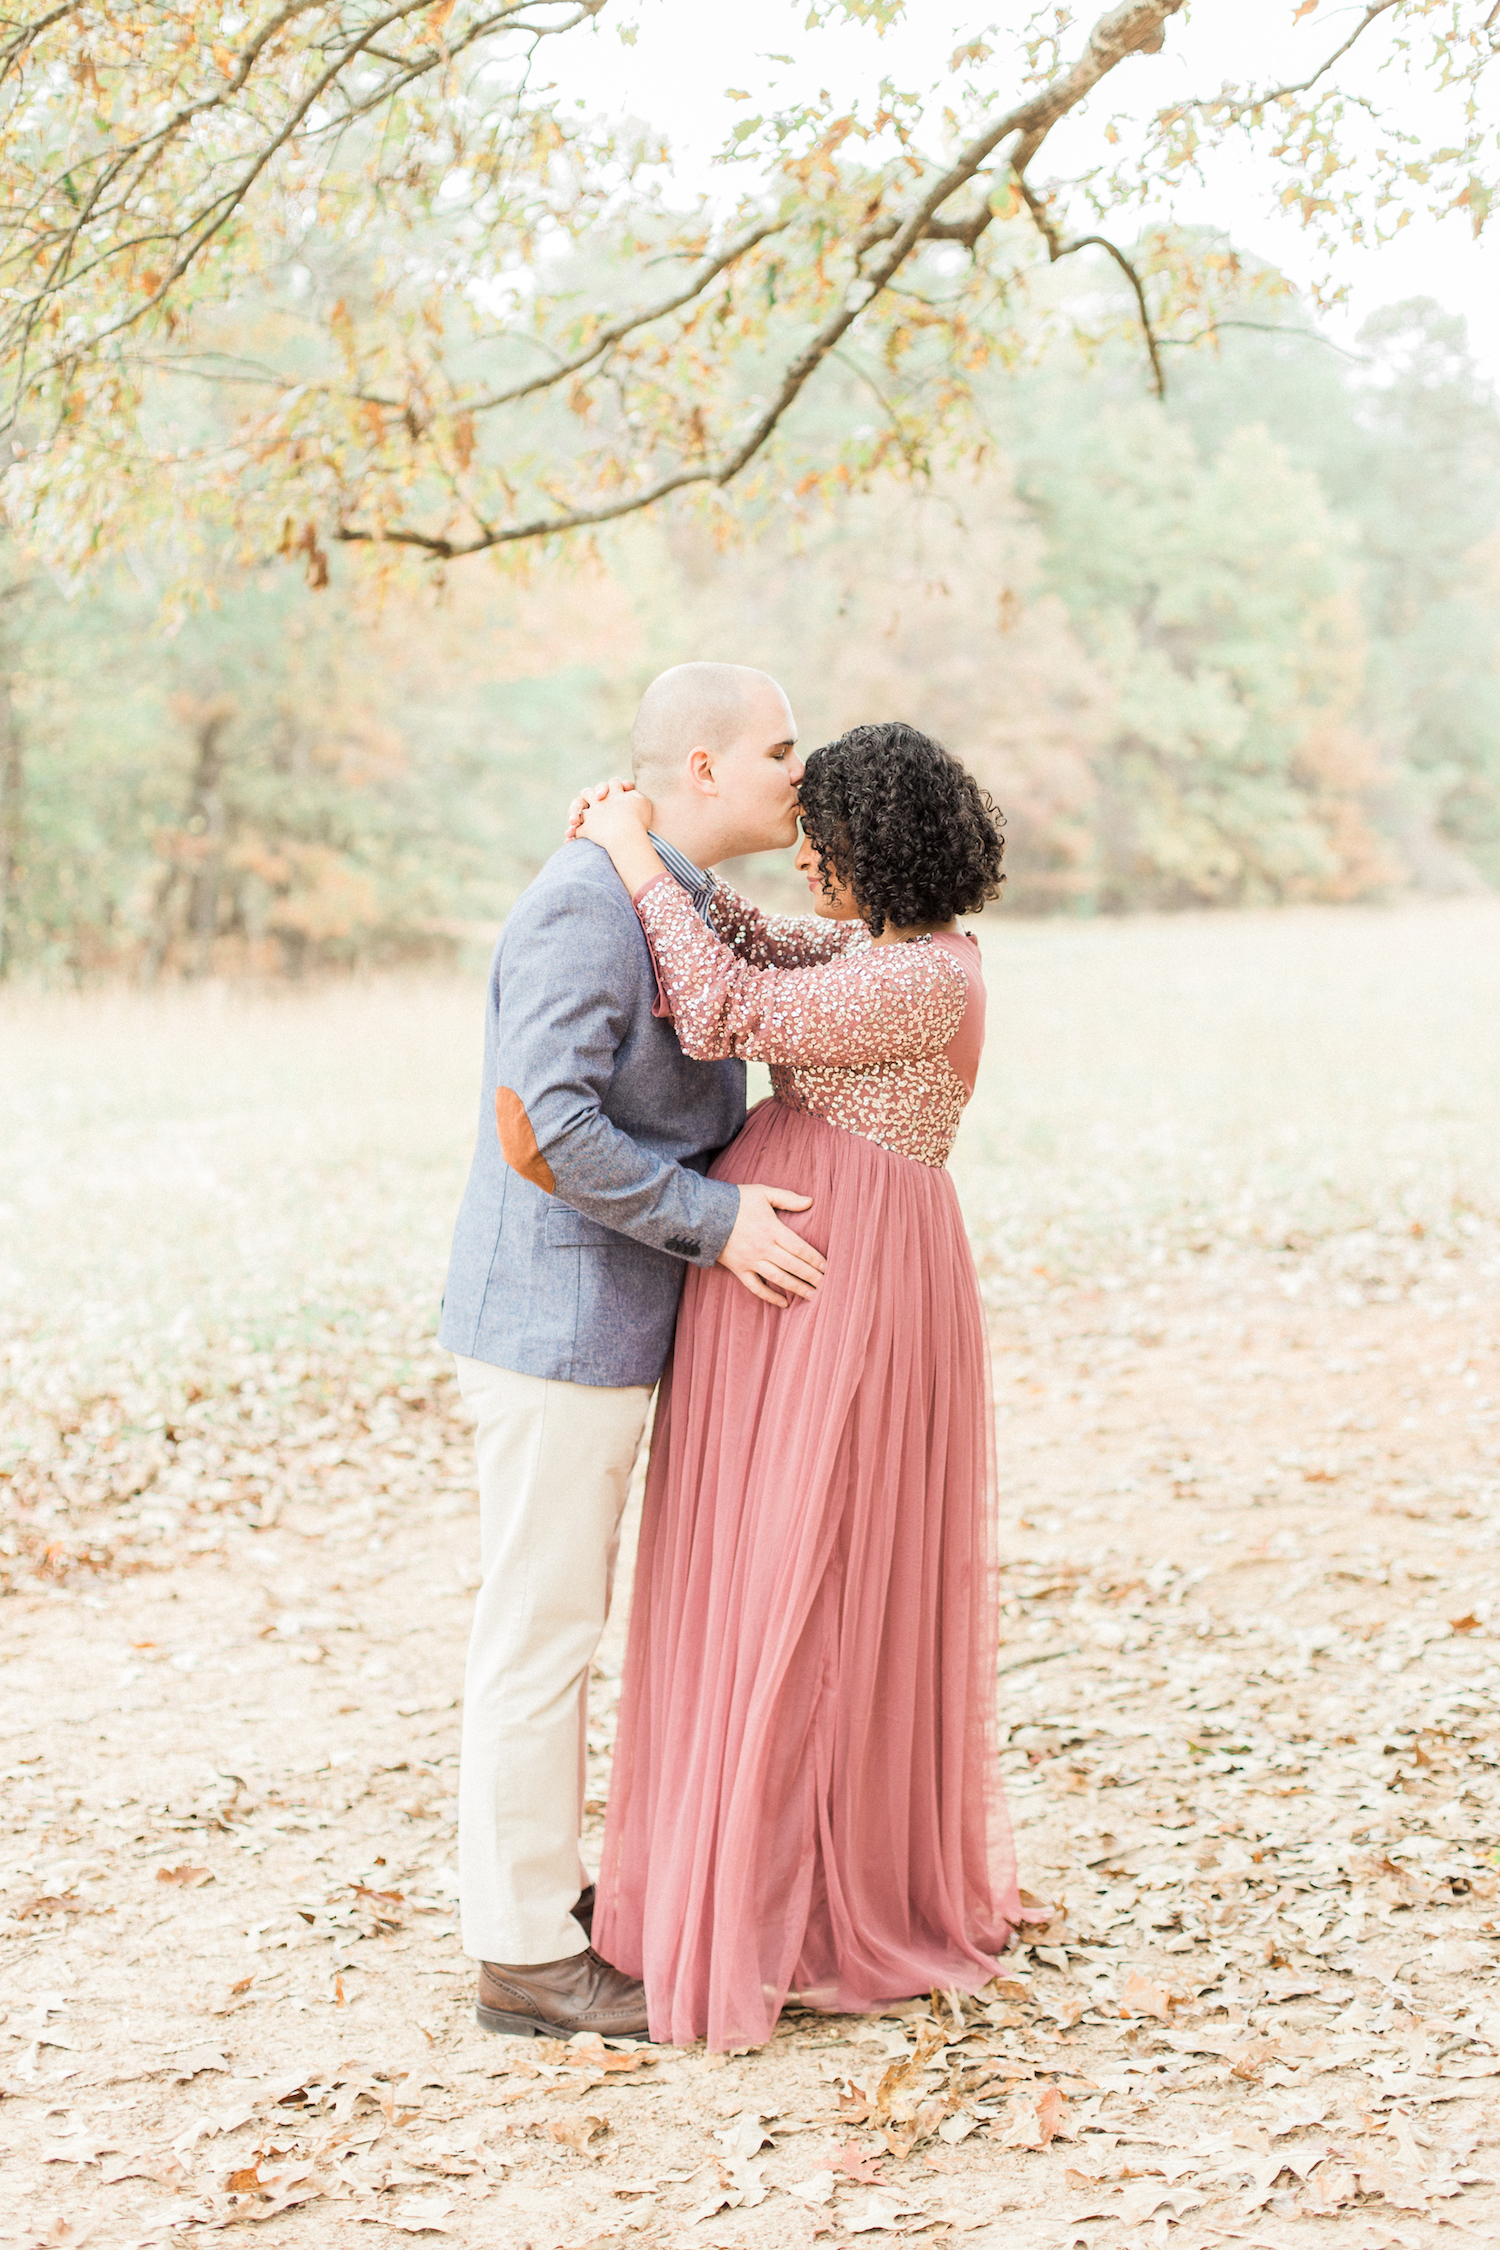 Dreamy romantic organic and nature maternity session. Sparkly tulle maternity dress. Maternity session style. Atlanta Fine Art Maternity Photographer.